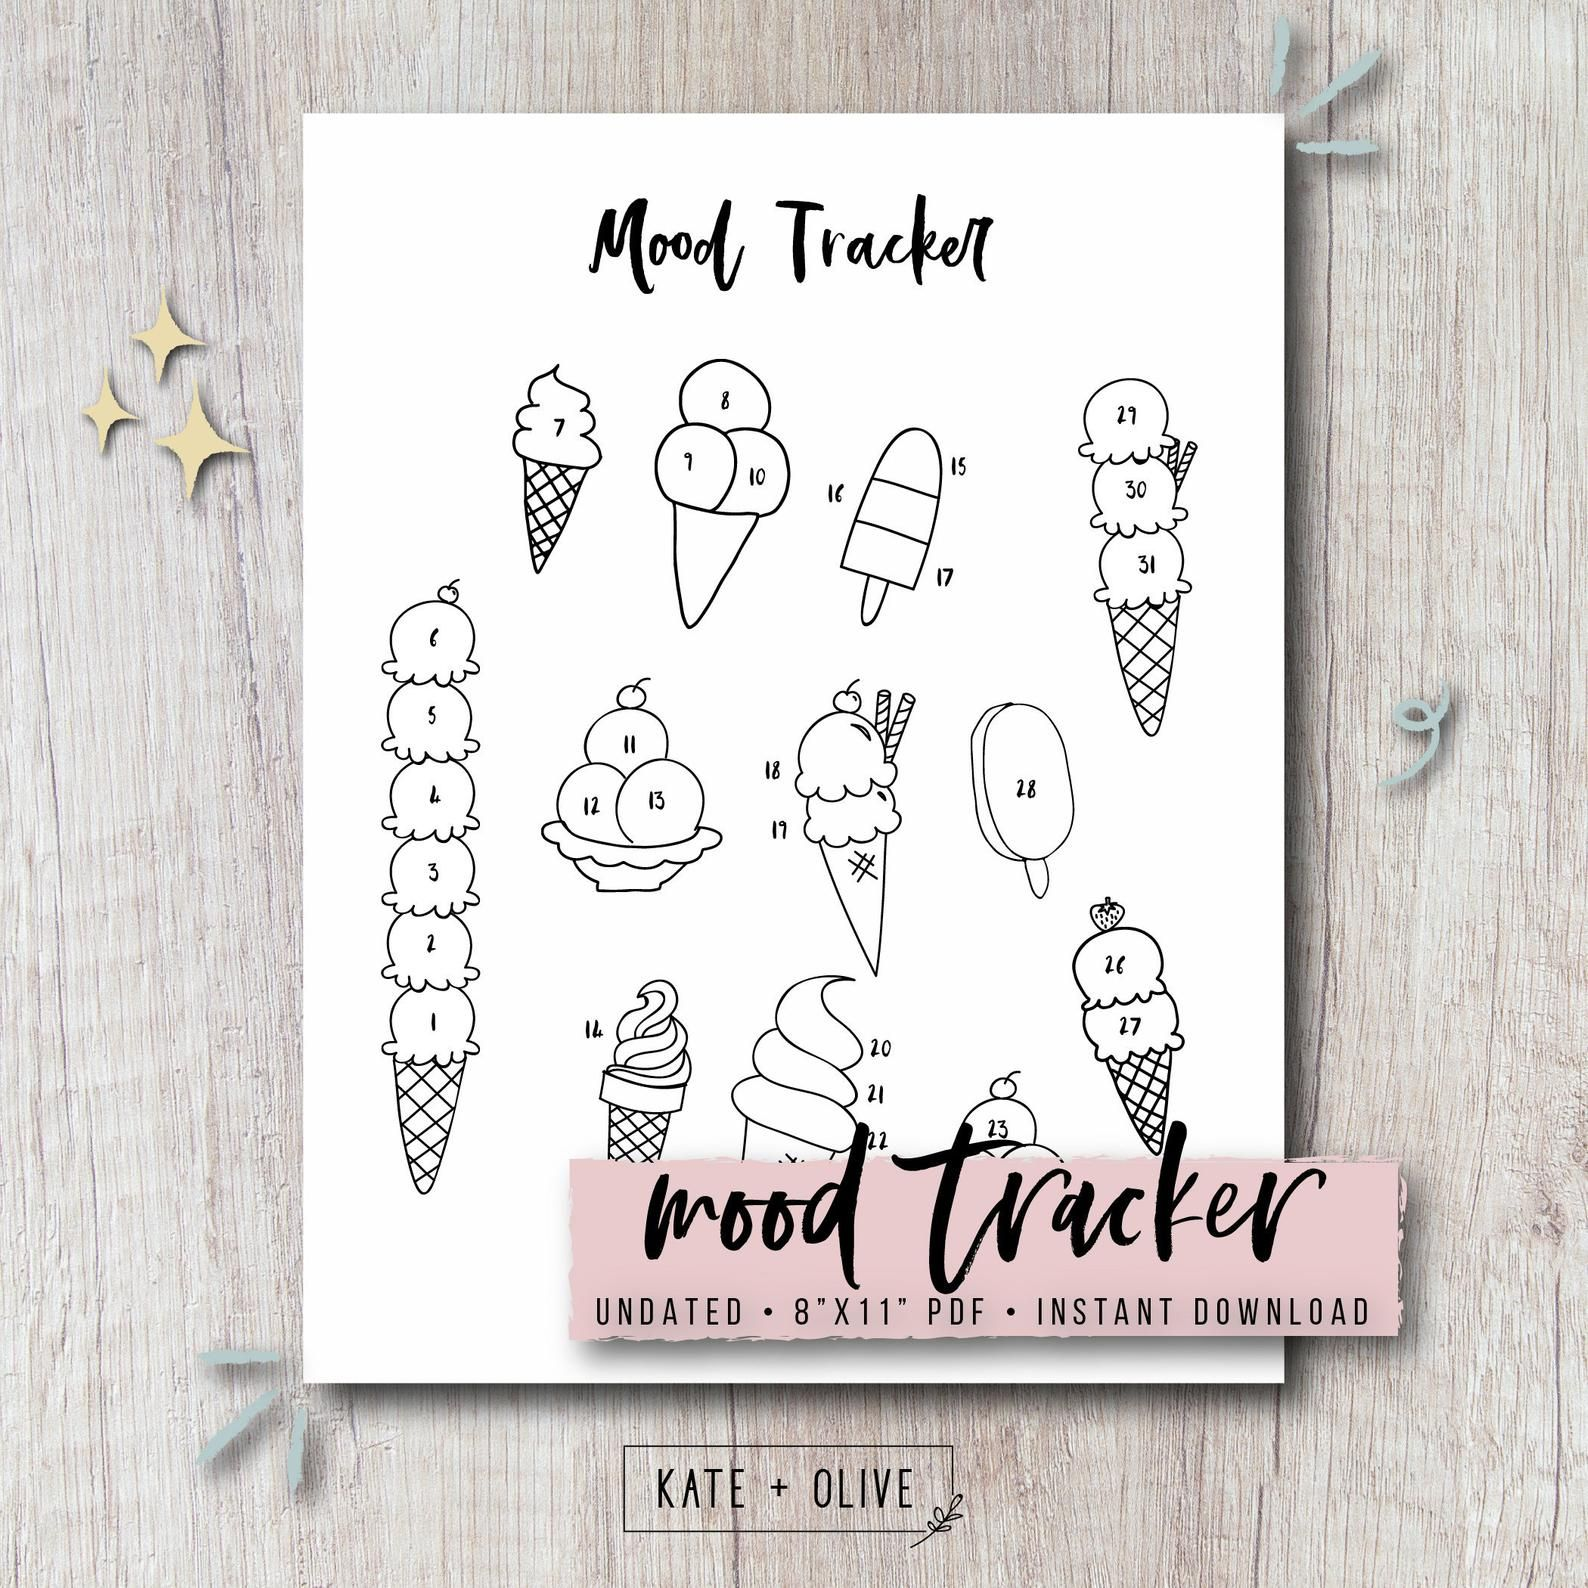 Mood Tracker Printable Bullet Journal Insert